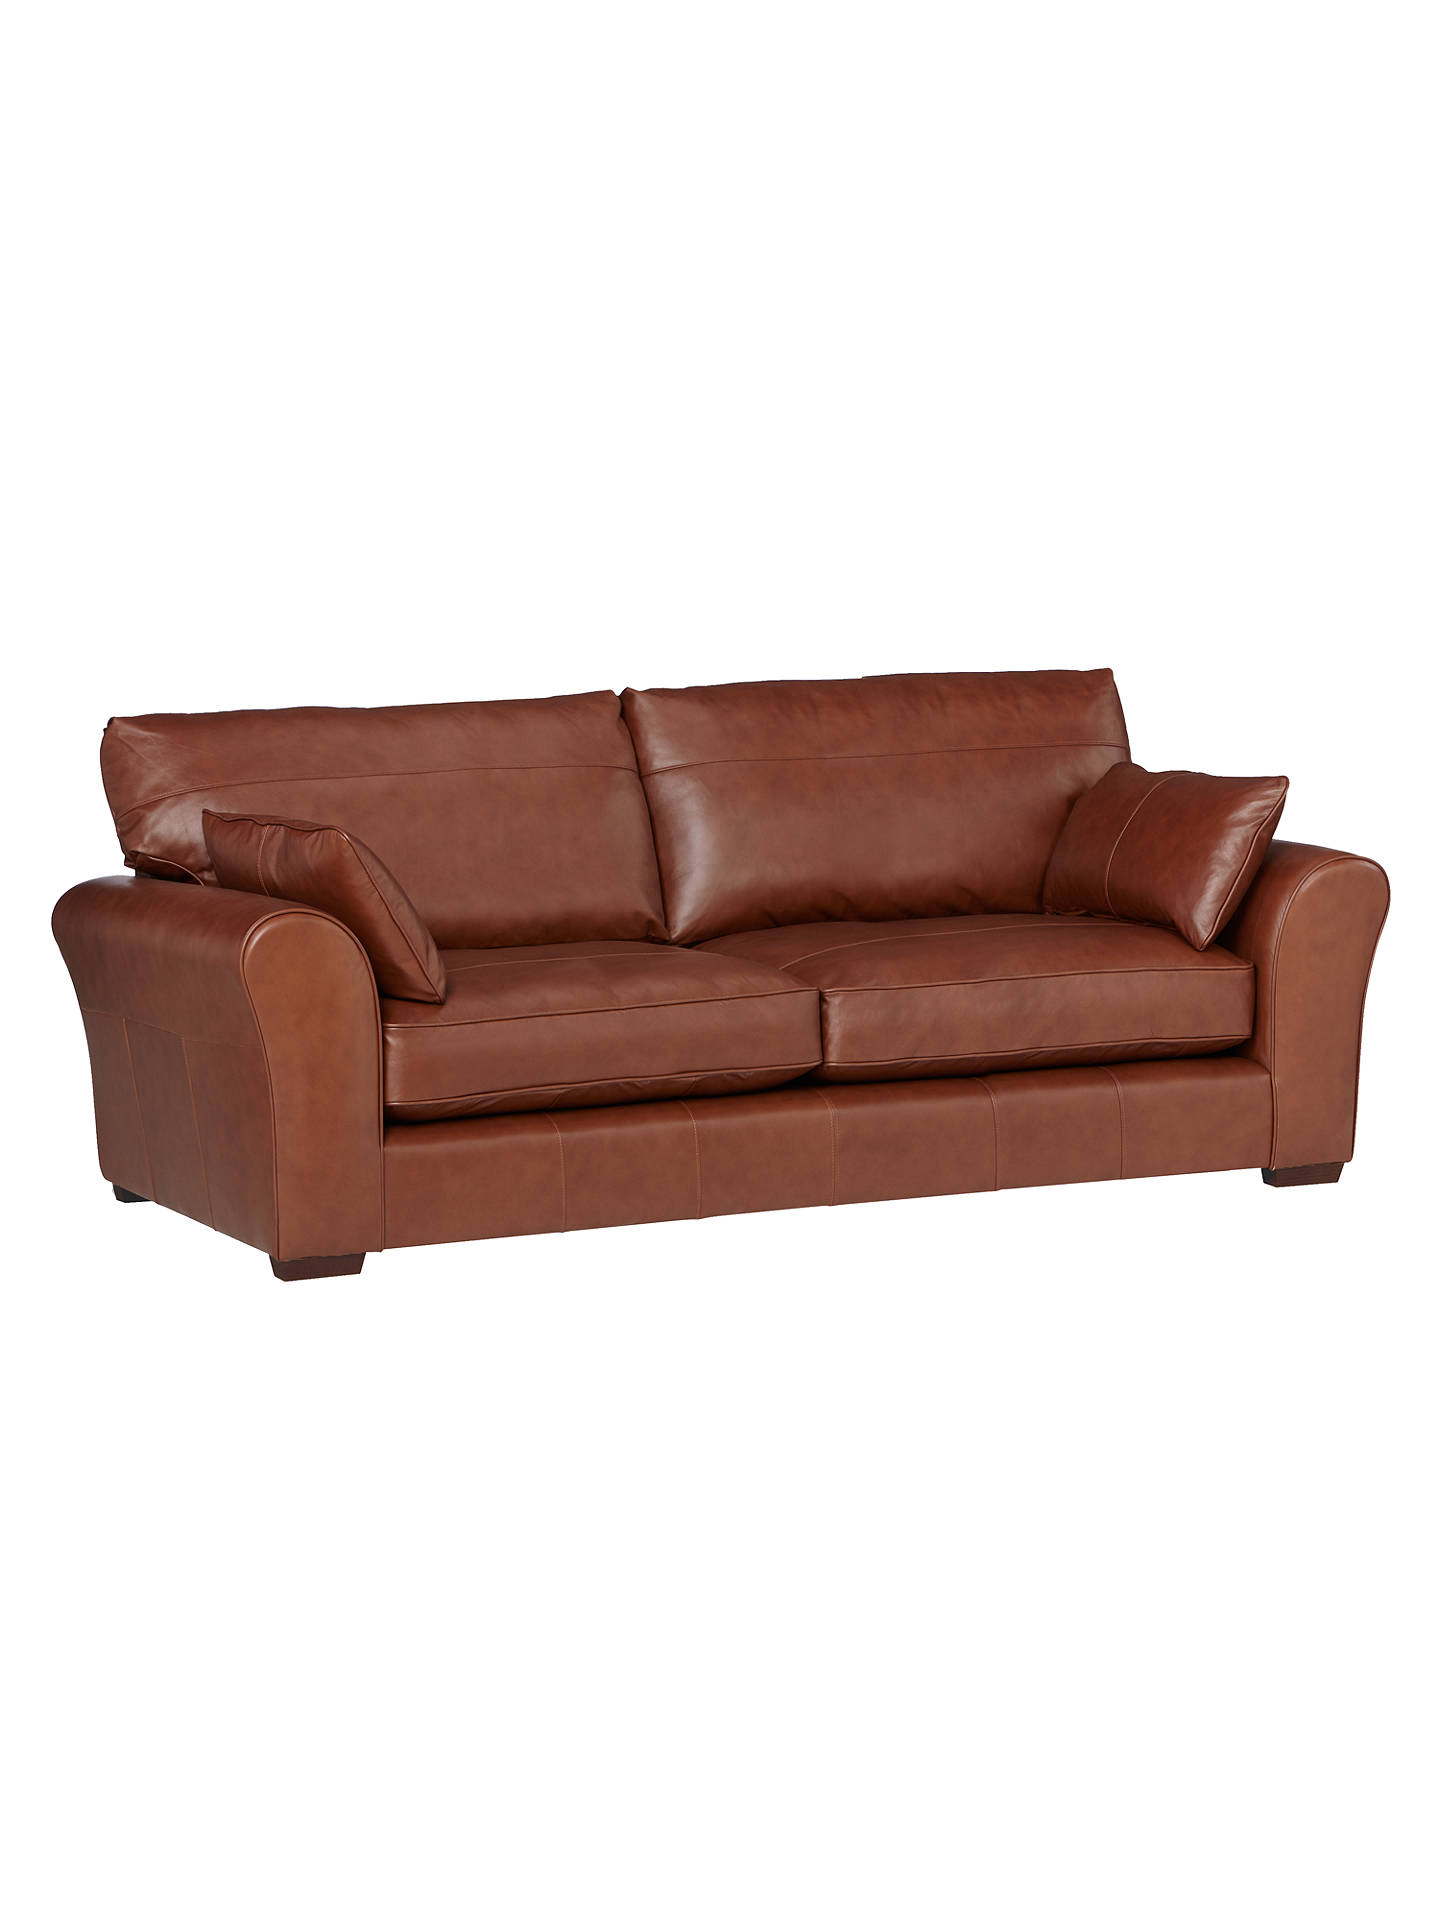 John Lewis Leon Grand 4 Seater Leather Sofa Dark Leg Contempo Castanga Online At